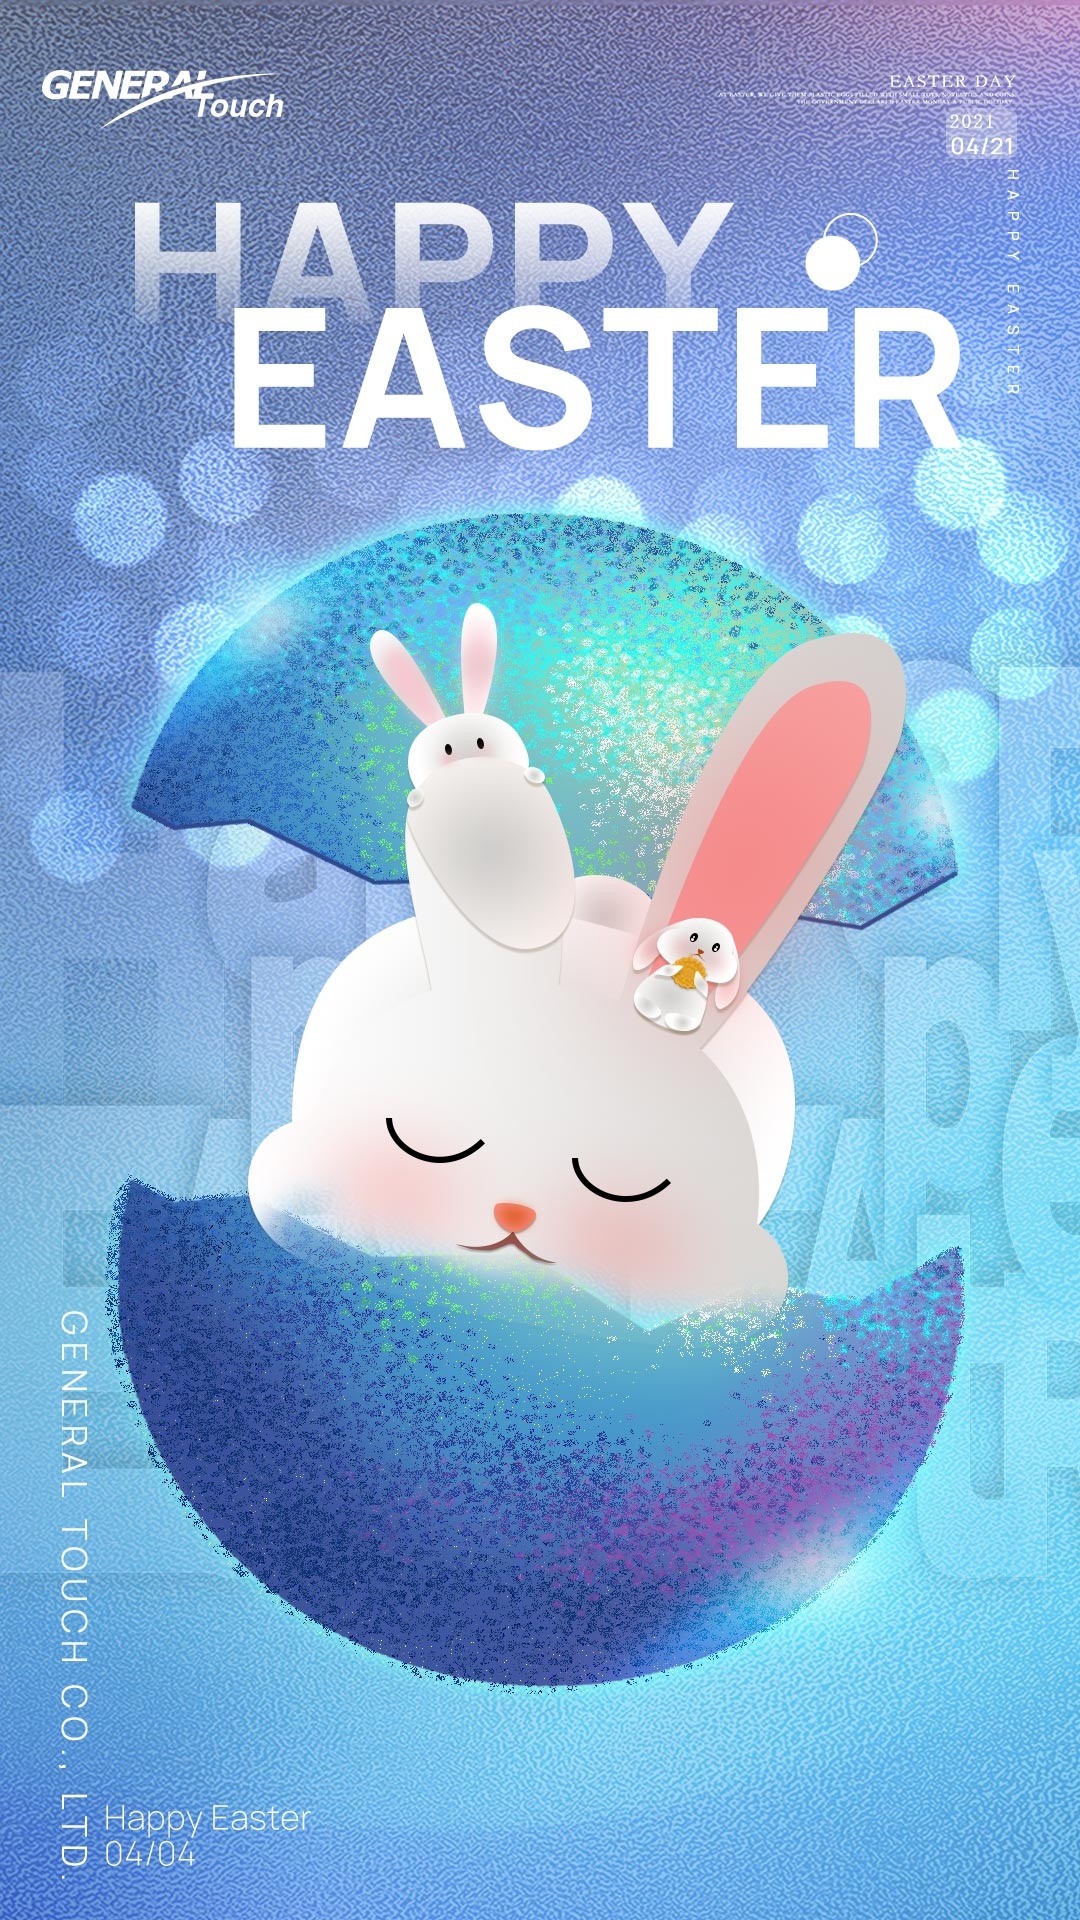 Have wonderful Easter Day